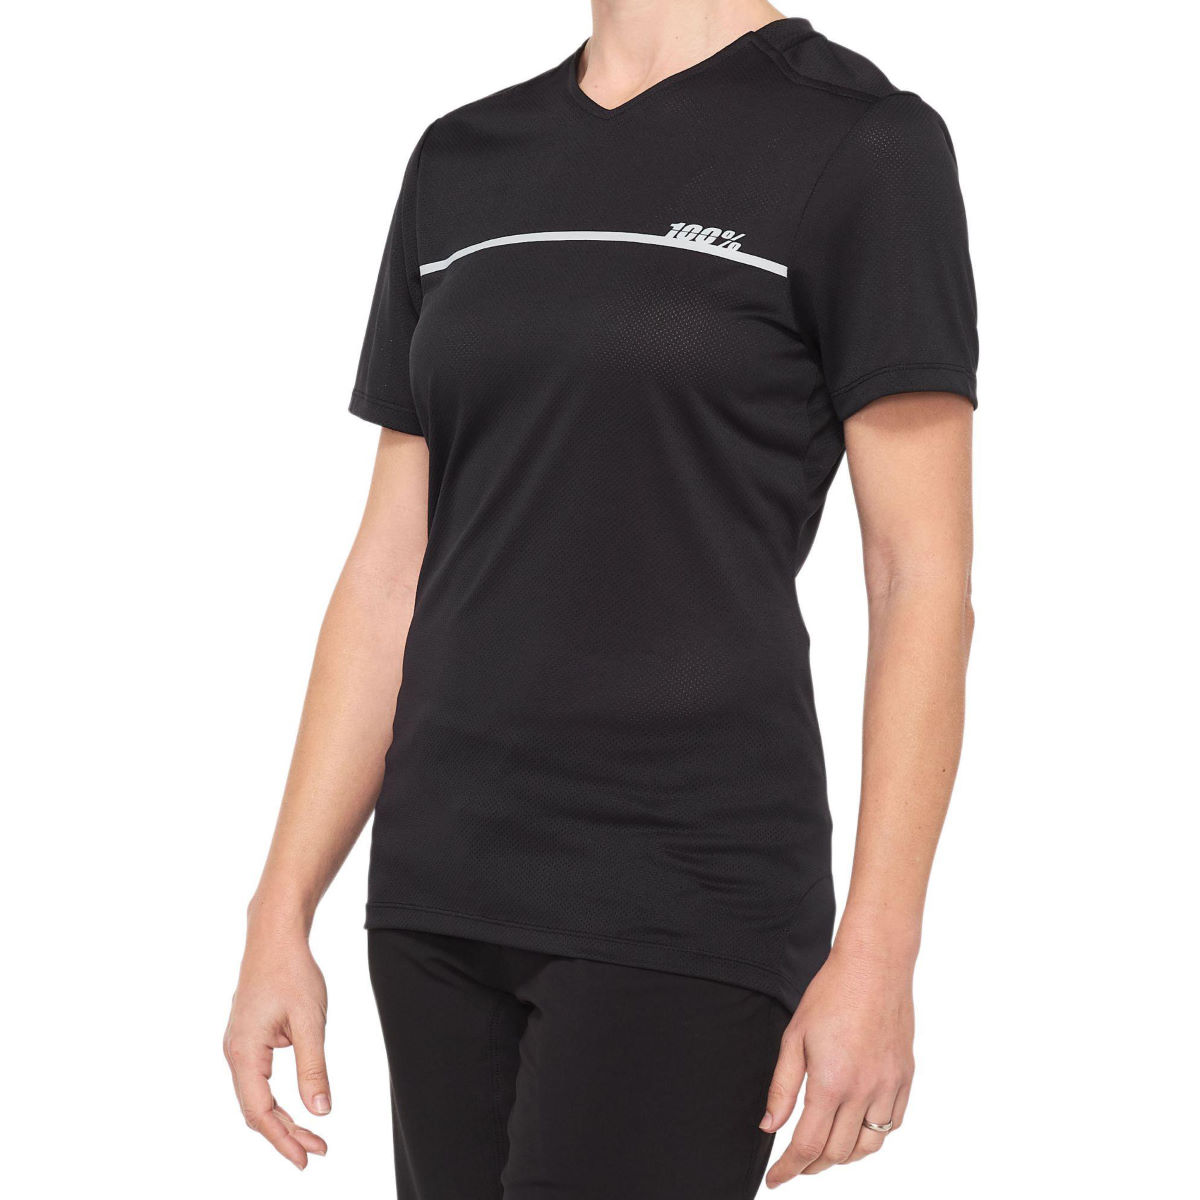 100% Womens Ridecamp Jersey - M Black/grey  Jerseys